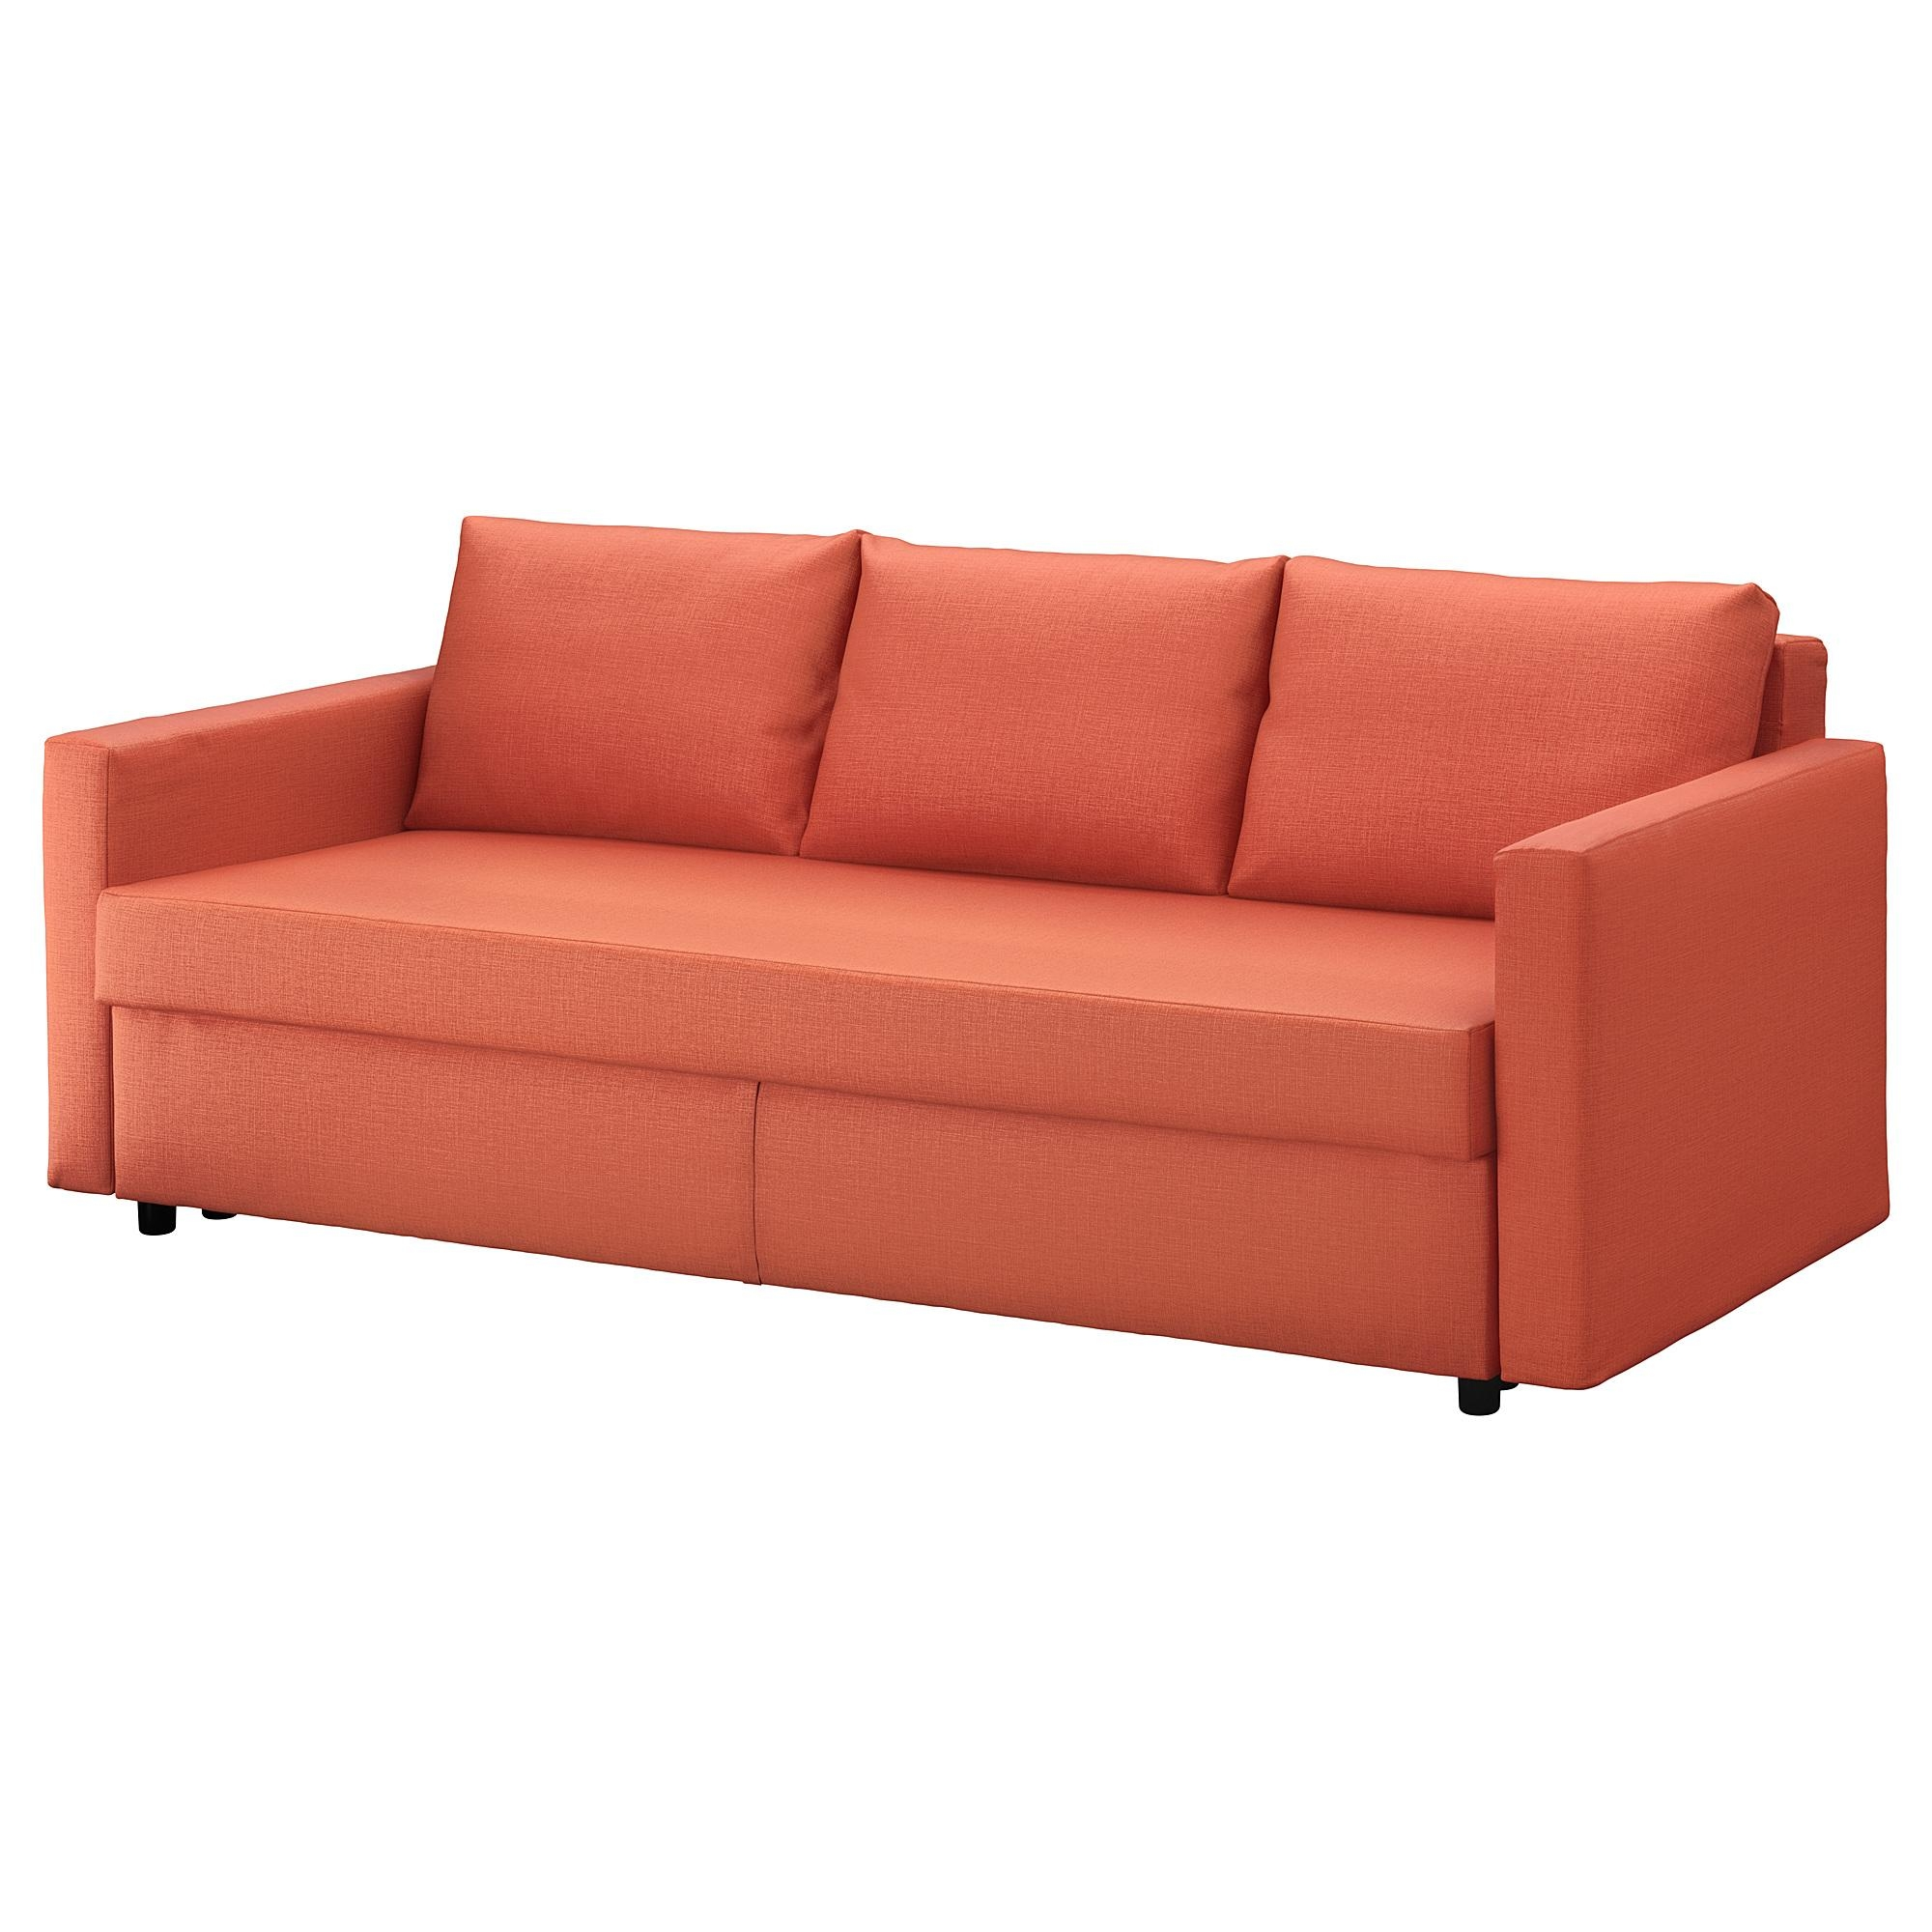 Friheten Sleeper Sofa – Skiftebo Dark Orange – Ikea With Regard To Orange Ikea Sofas (View 4 of 20)